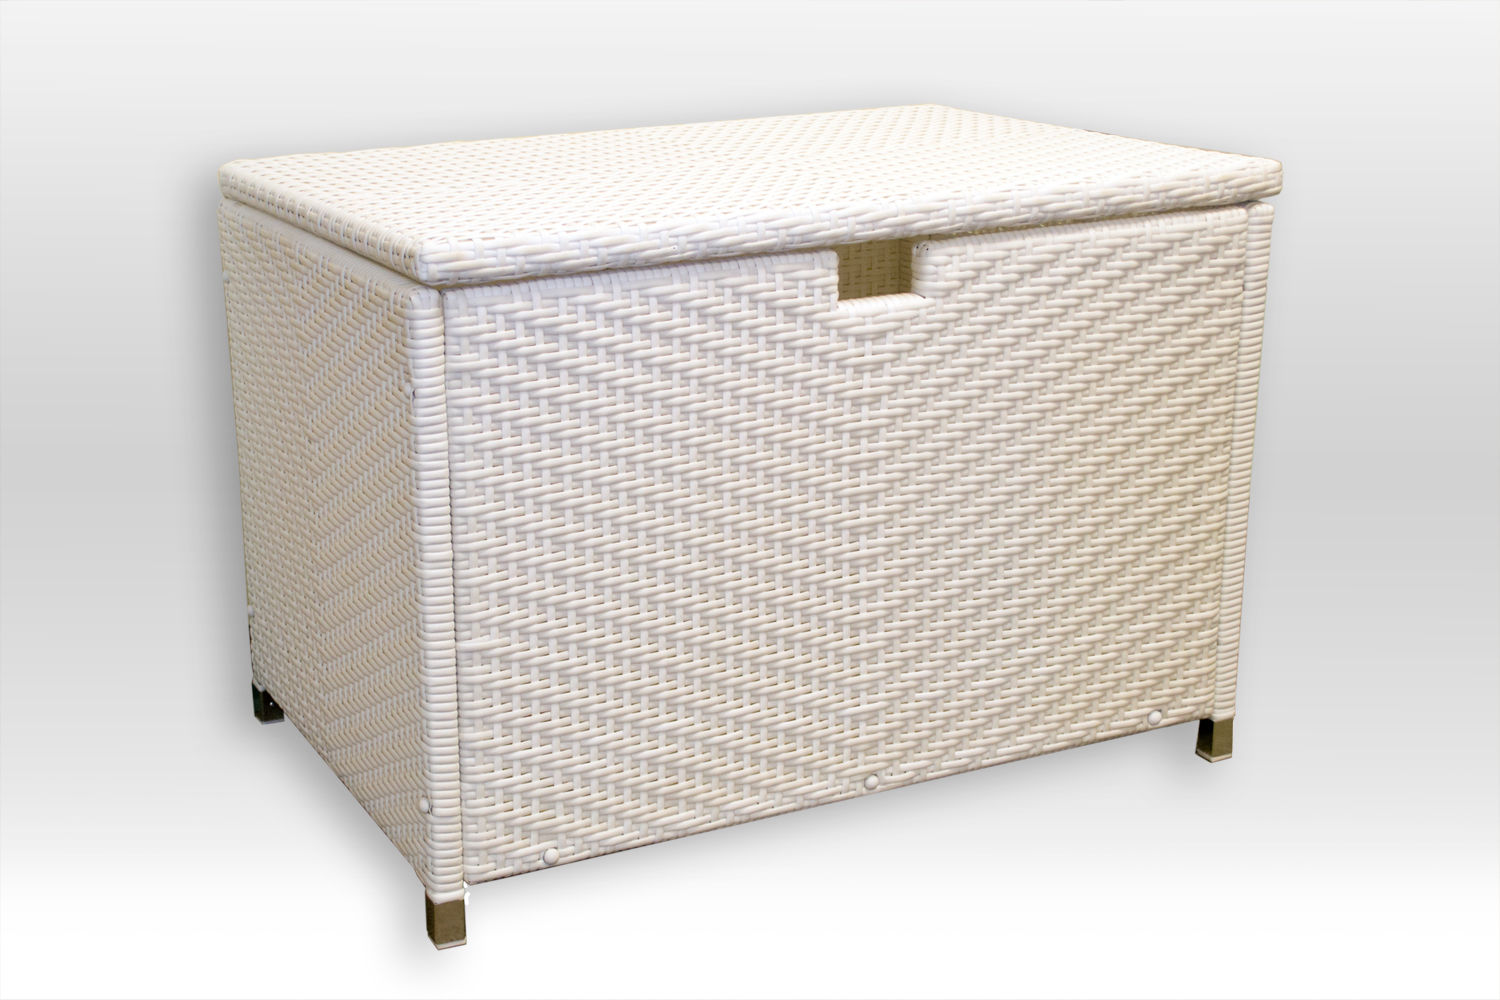 #203 - Medium Size White Resin Wicker Storage Box - For Indoor or Outdoor Use